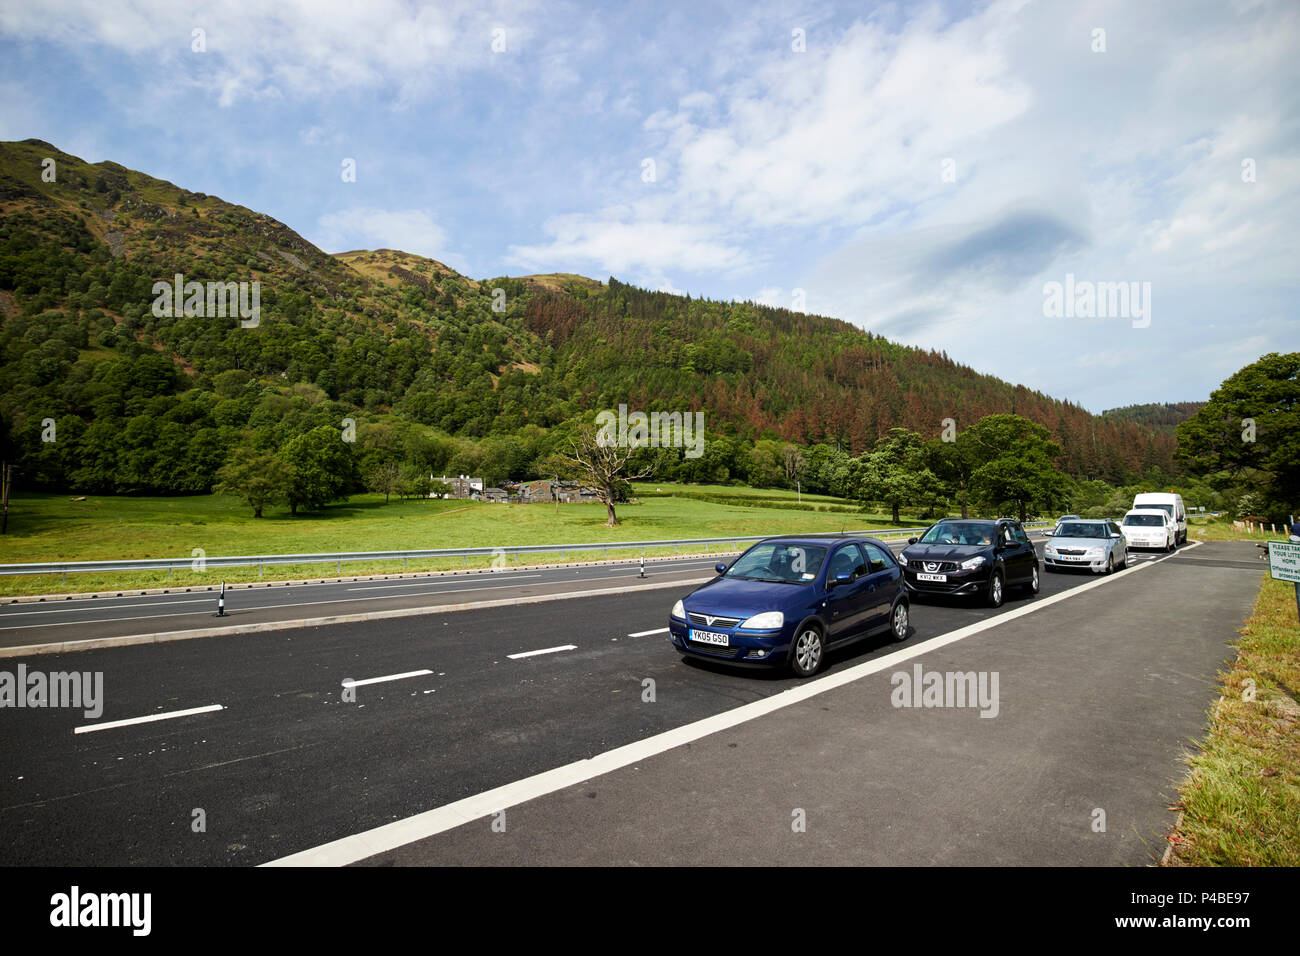 cars parked in a lay-by of the A66 on Bassenthwaite lake at blackstock point in the lake district Cumbria England UK - Stock Image